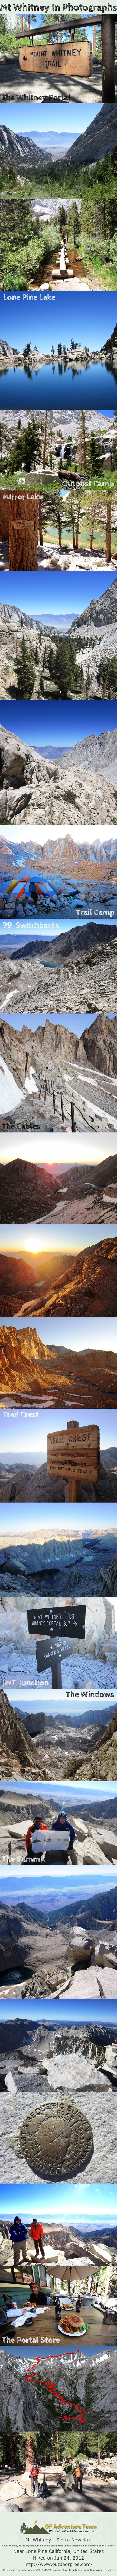 Mt Whitney Hike in Photos